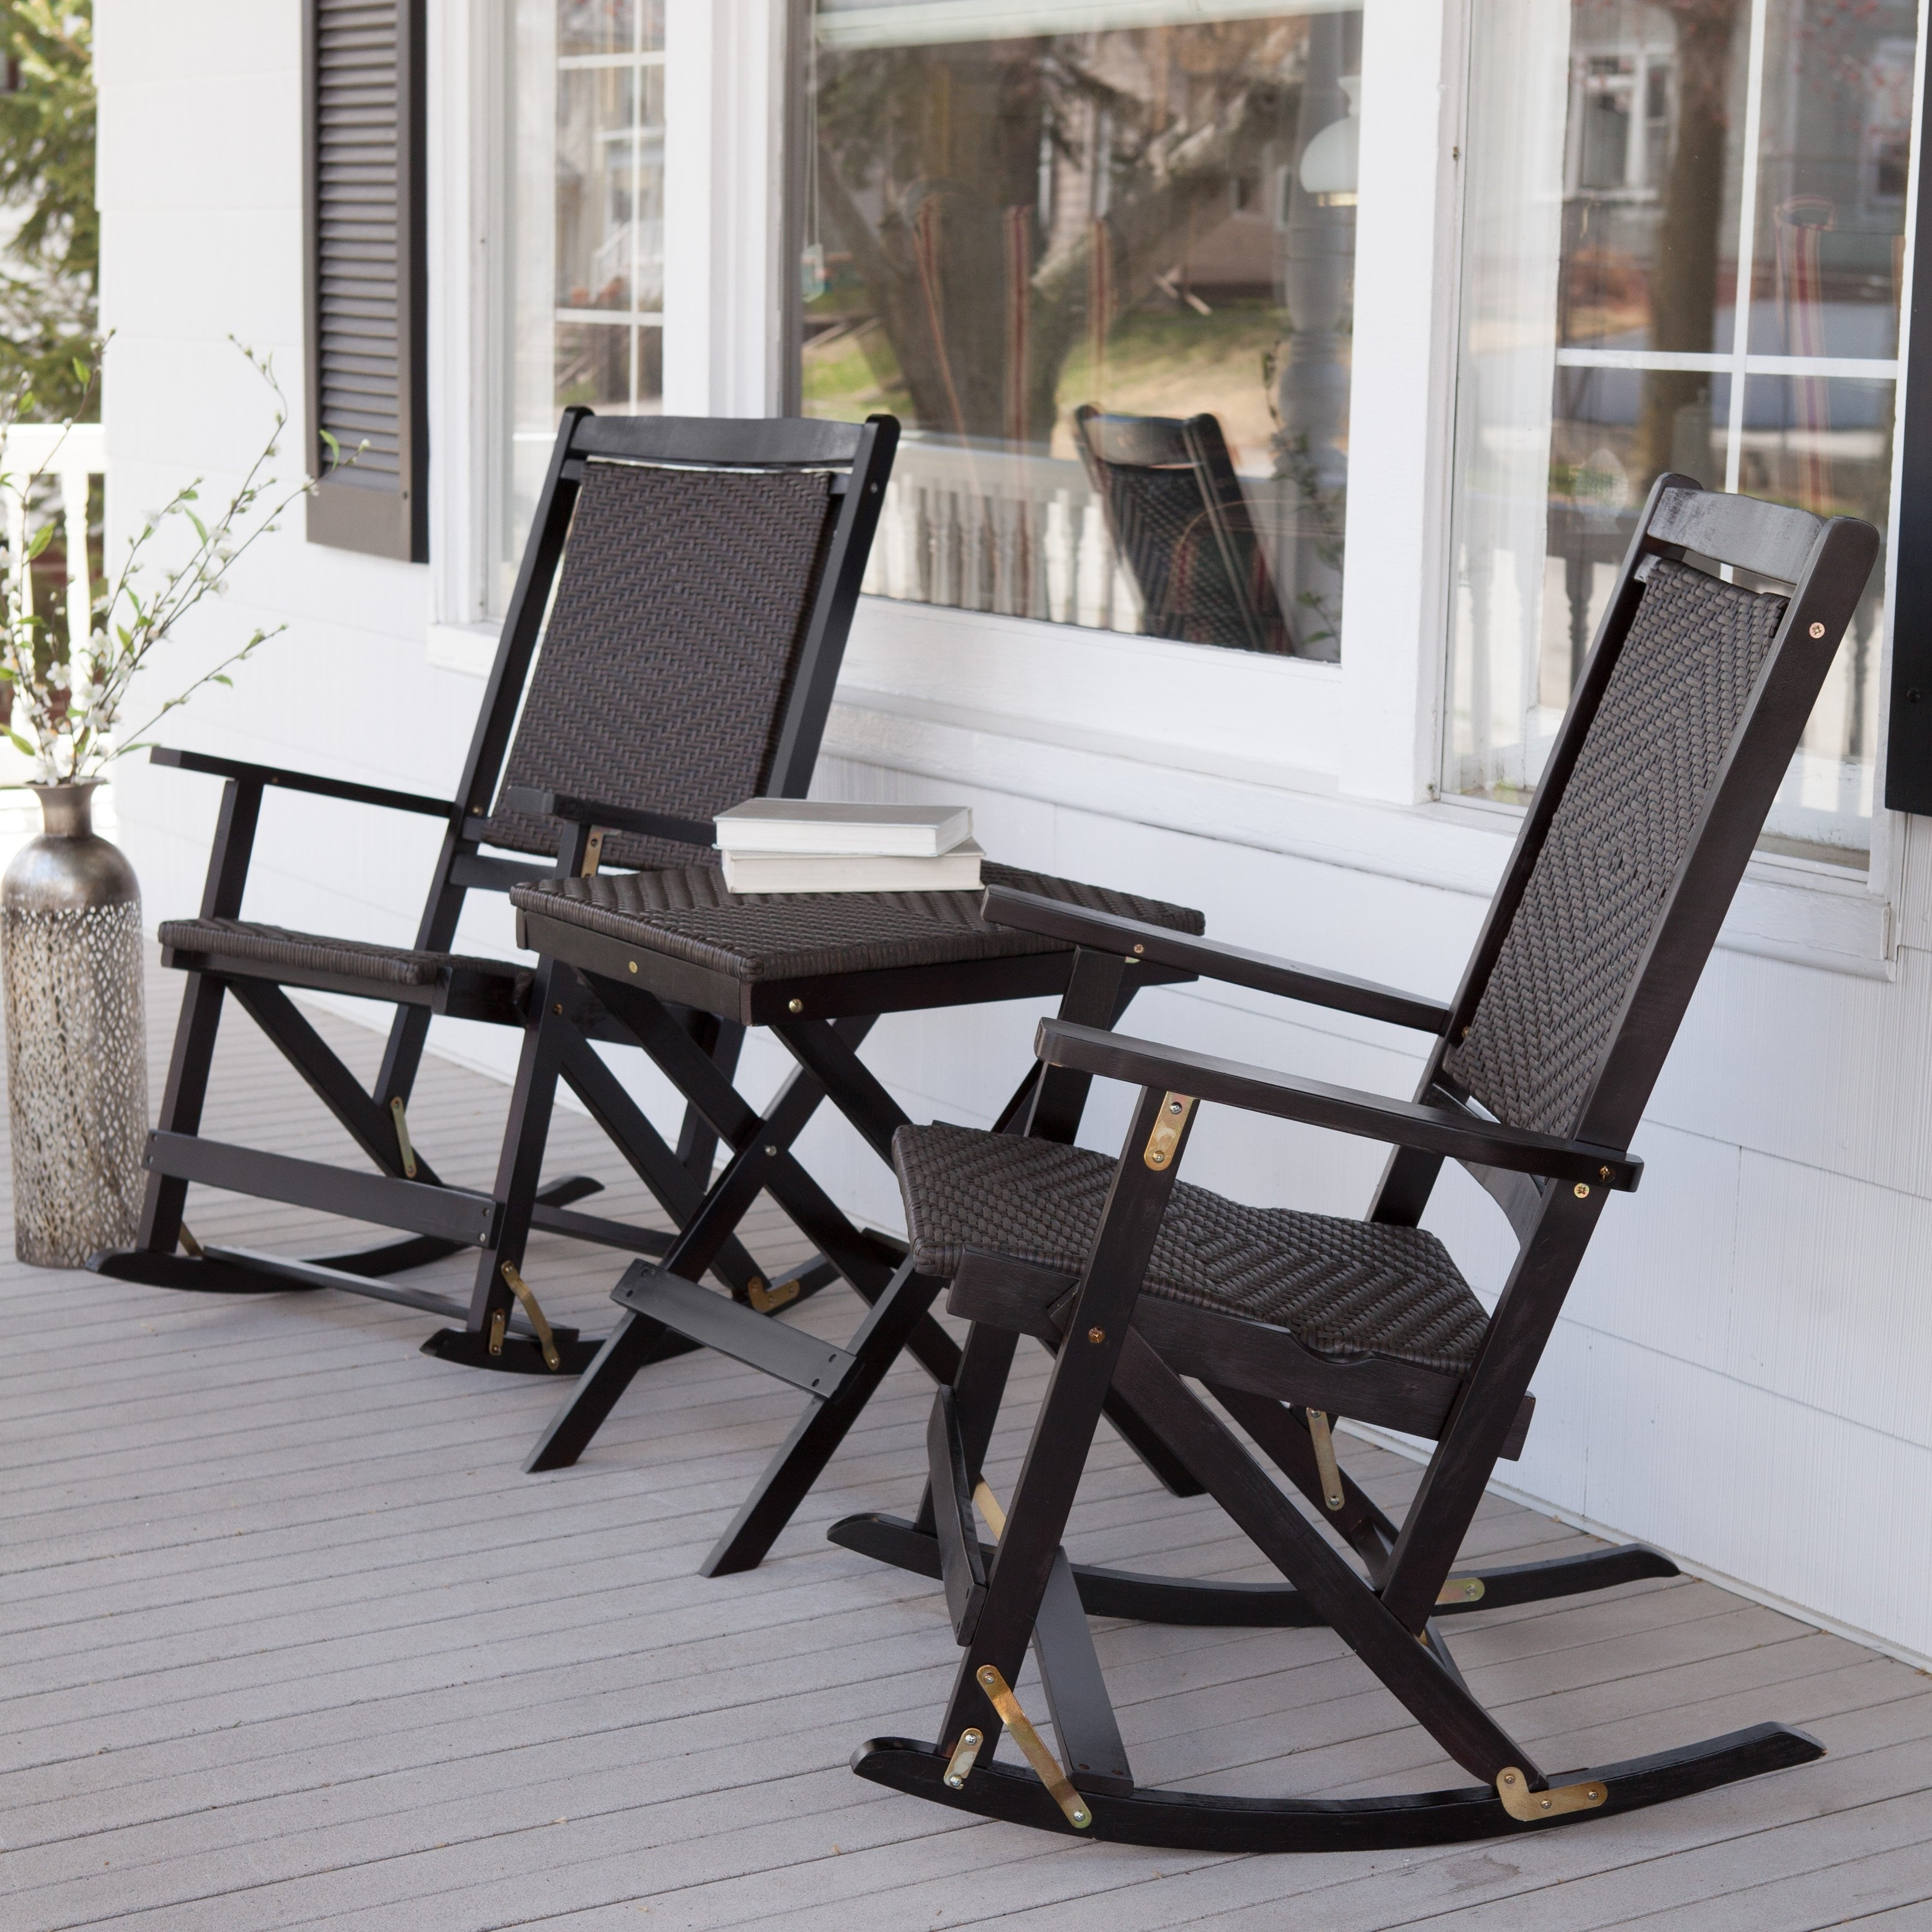 Outdoor Rocking Chairs Home Depot Patio The Good Chair Best Ideas With Regard To Resin Patio Rocking Chairs (#5 of 15)